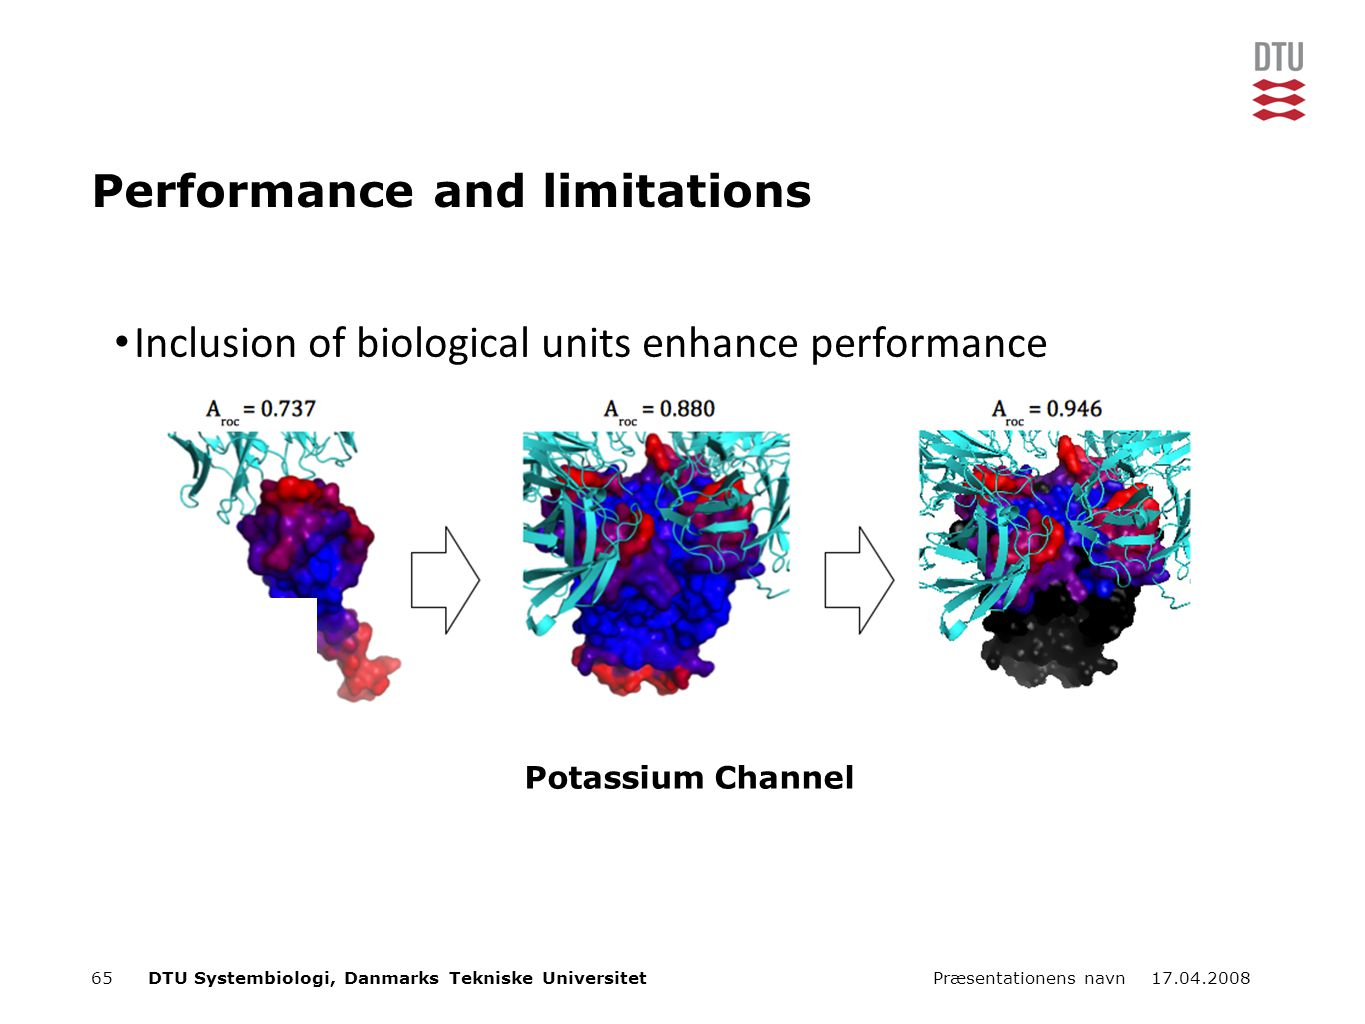 17.04.2008Præsentationens navn65DTU Systembiologi, Danmarks Tekniske Universitet Inclusion of biological units enhance performance Performance and limitations Potassium Channel